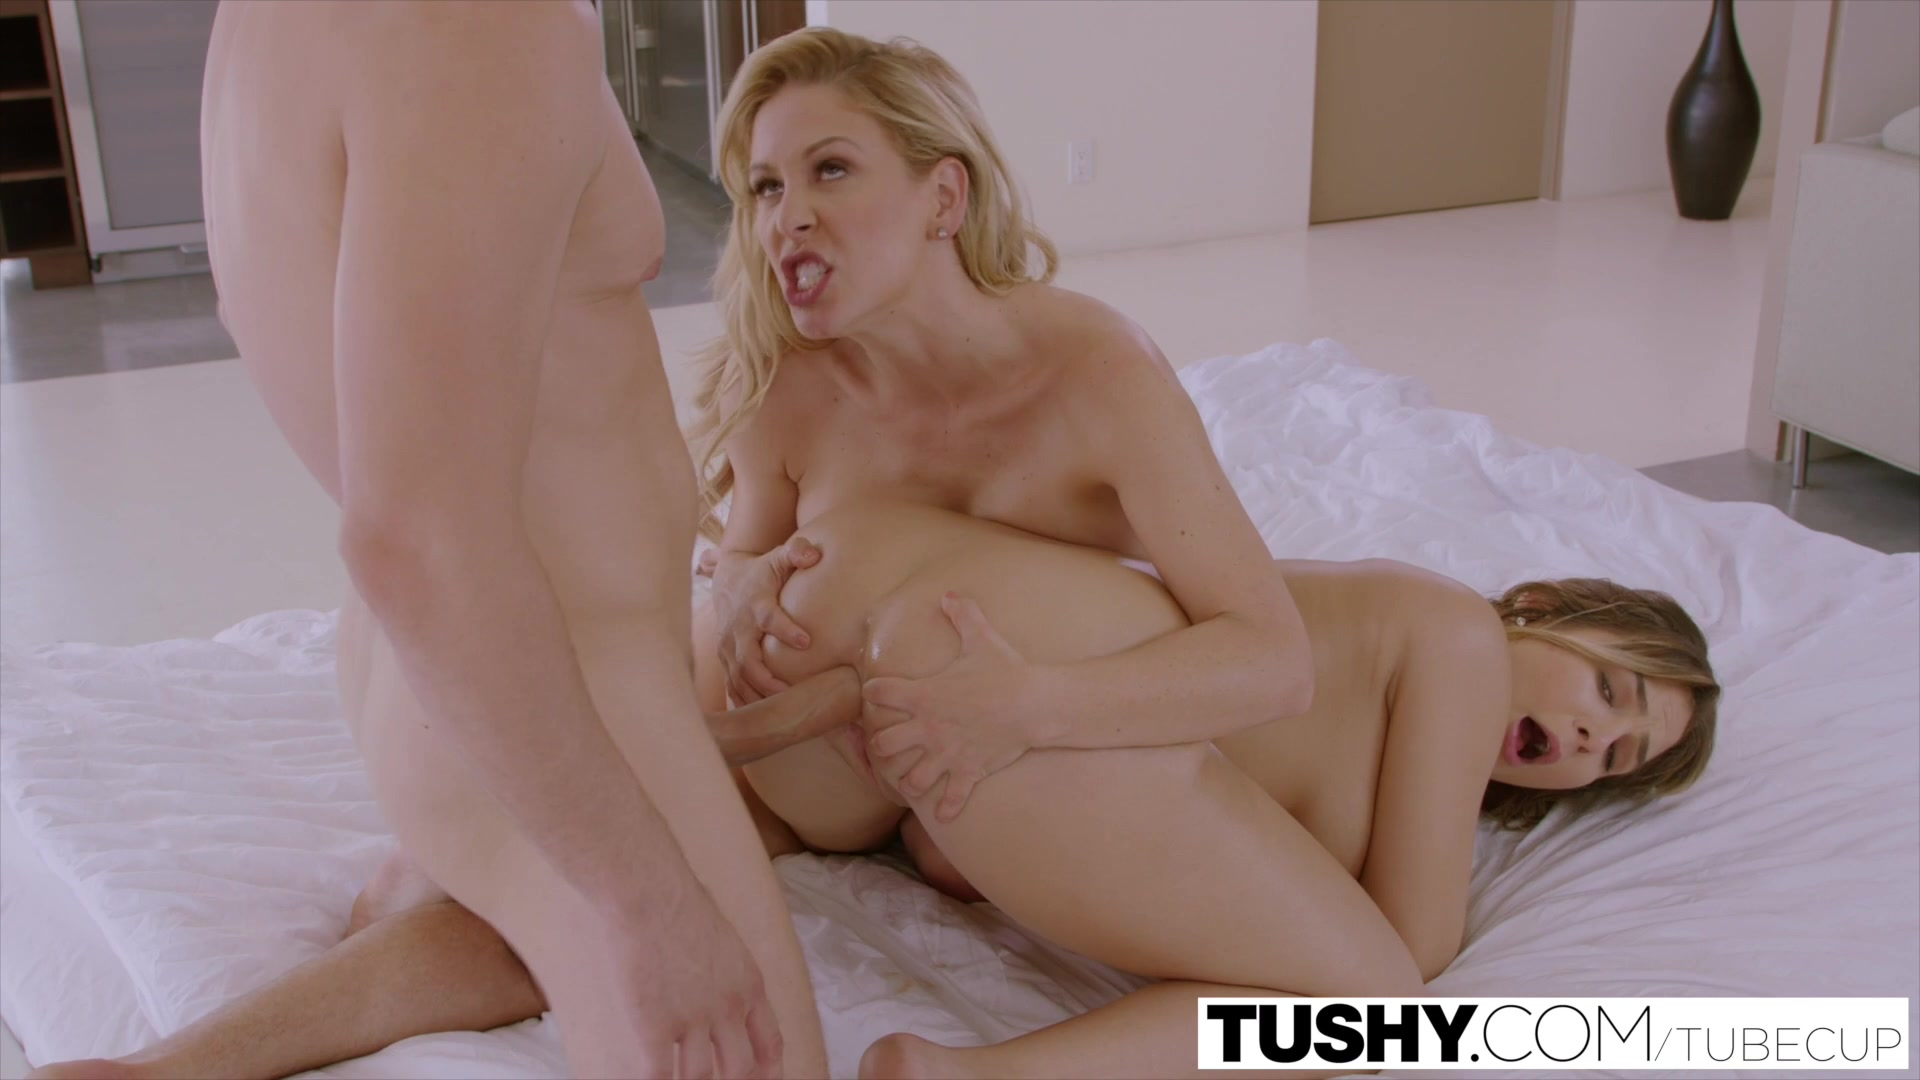 Tushy blair williams has hot anal sex with married man